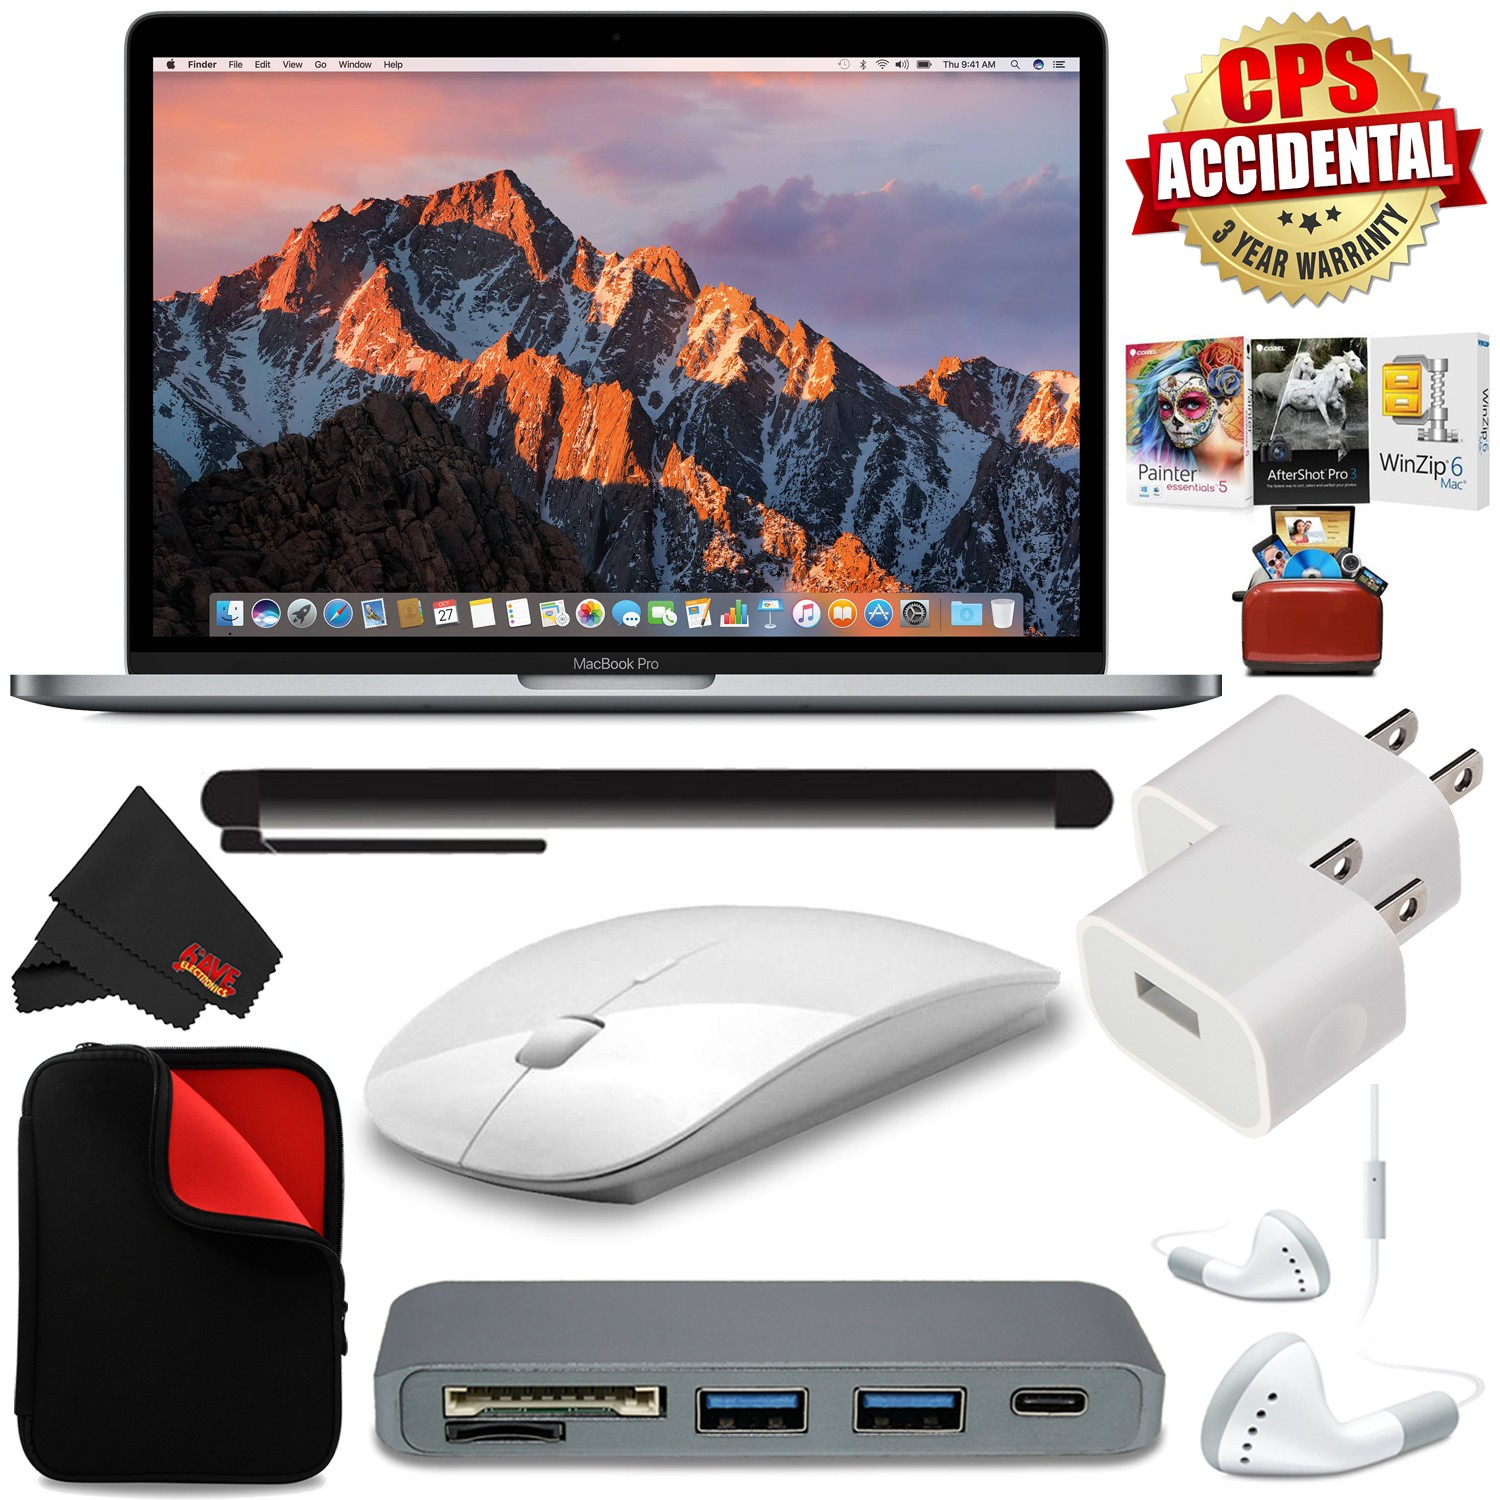 """Apple 13.3"""" MacBook Pro (Mid 2017, Silver) + Travel USB 5V Wall Charger for iPhone/iPad (White) Bundle"""